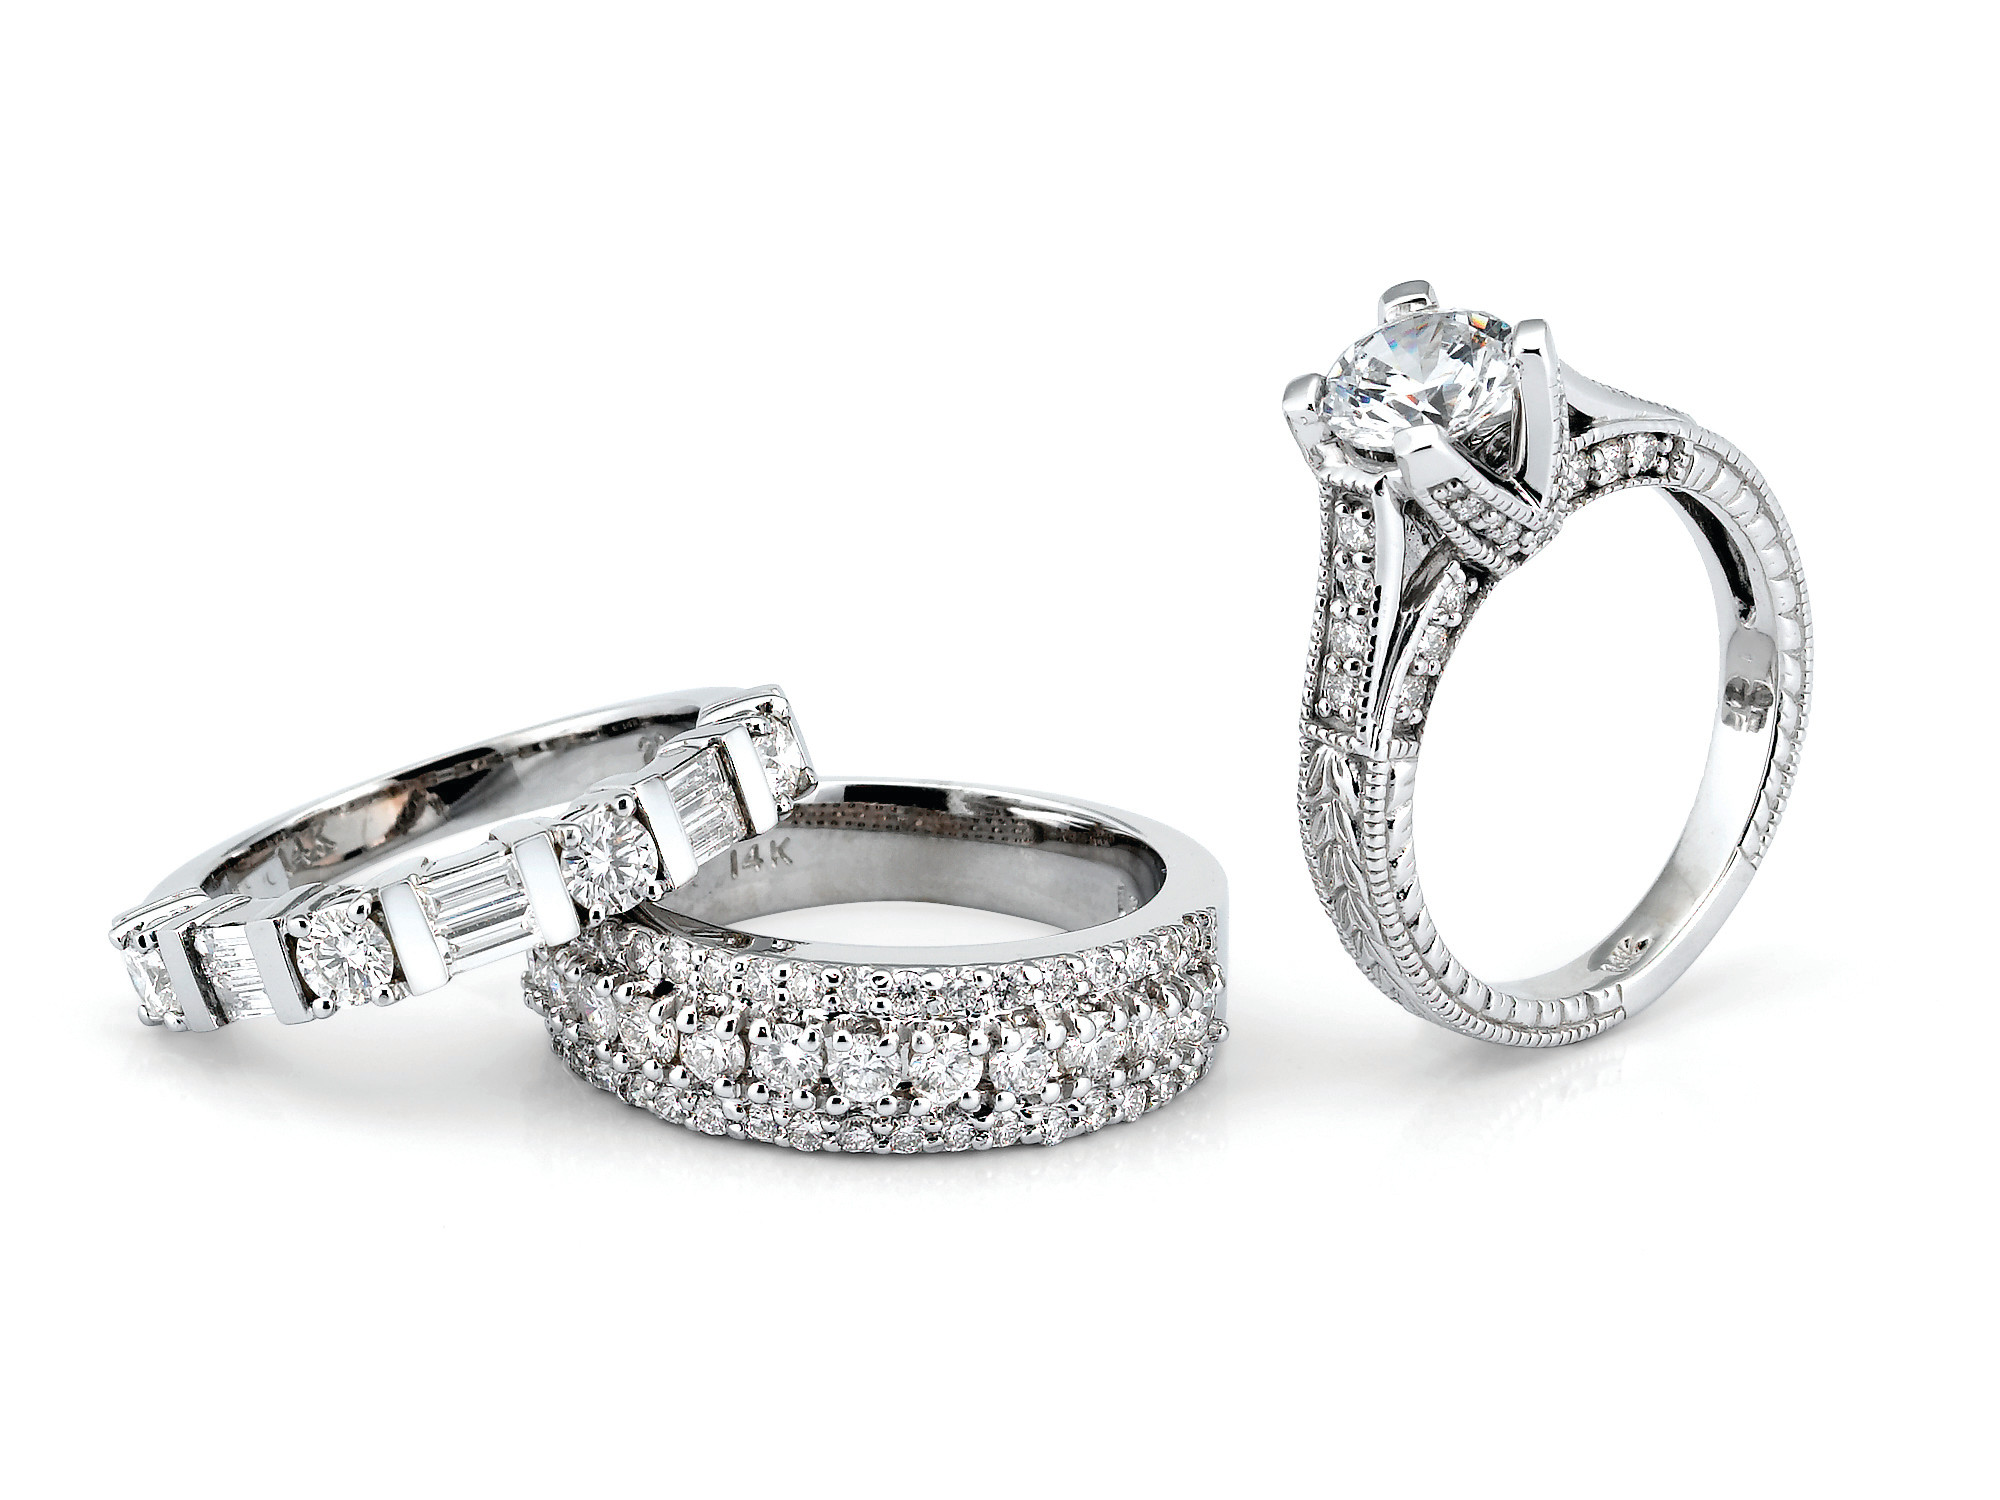 Beautiful Diamond Eternity Bands along with an Engagement Ring on white background.